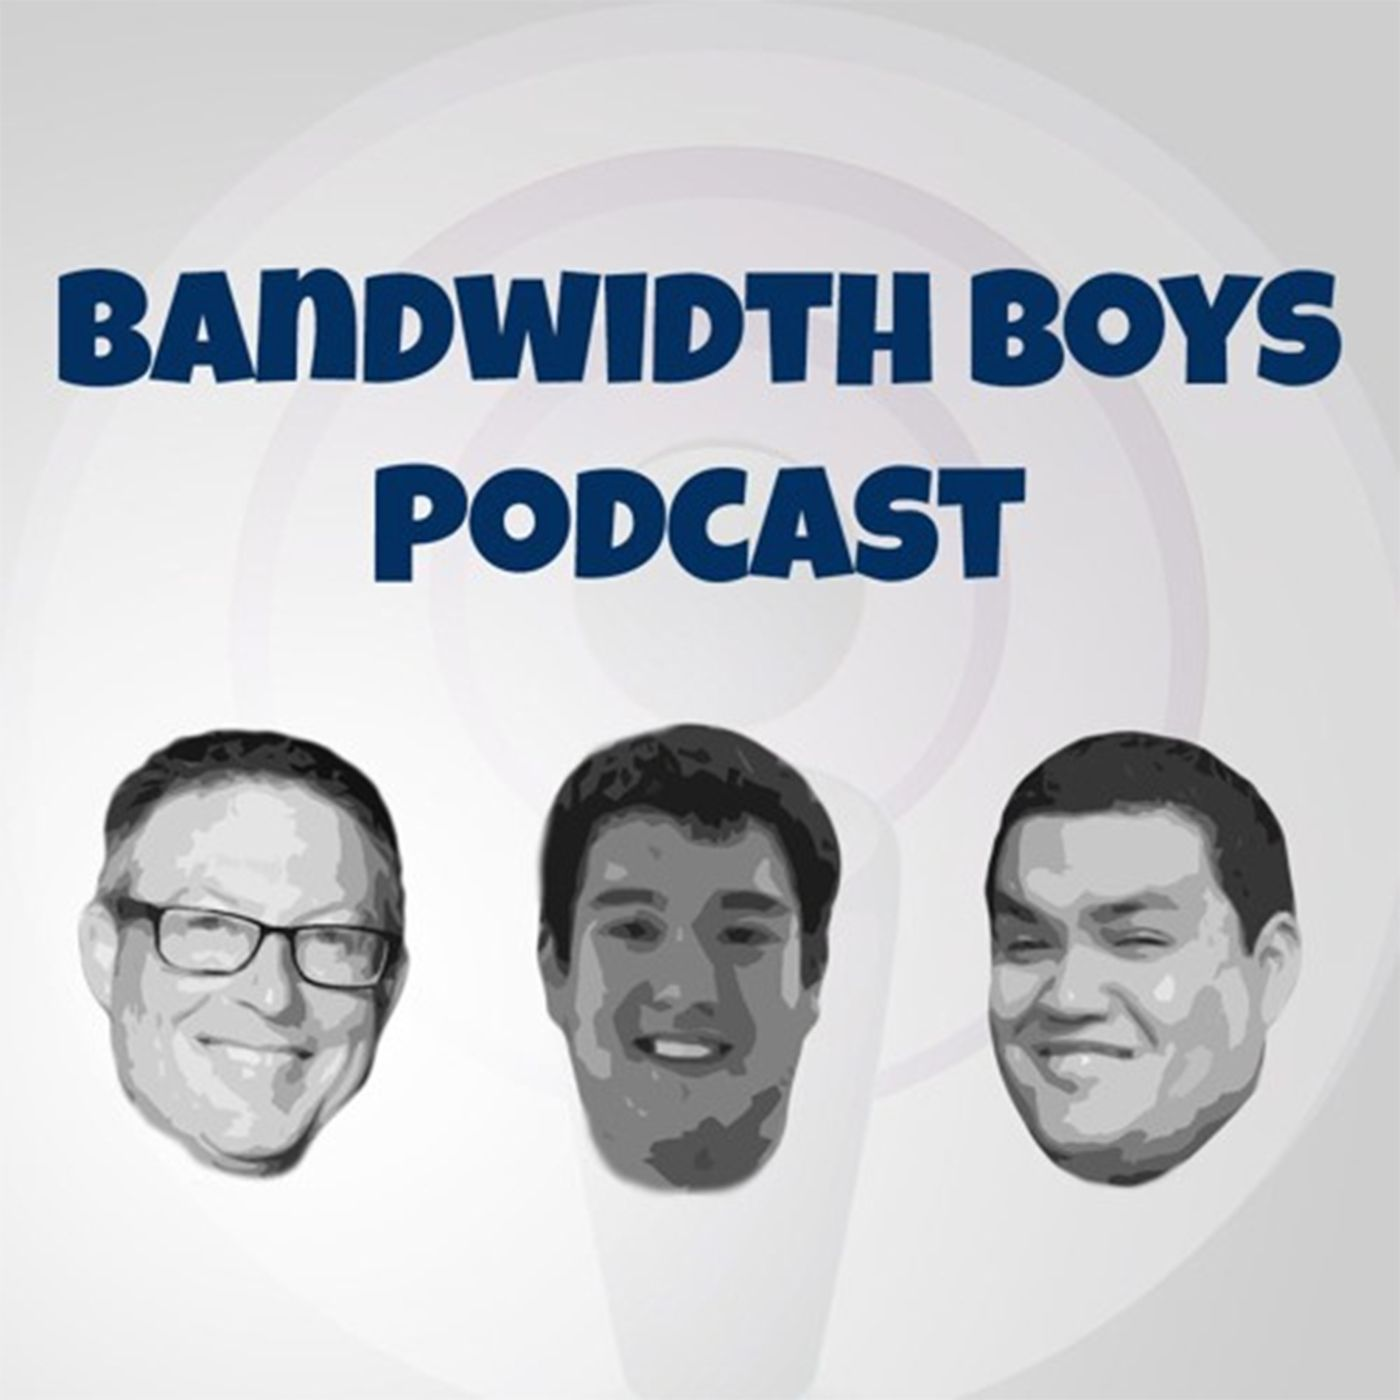 Bandwidth Boys Podcast